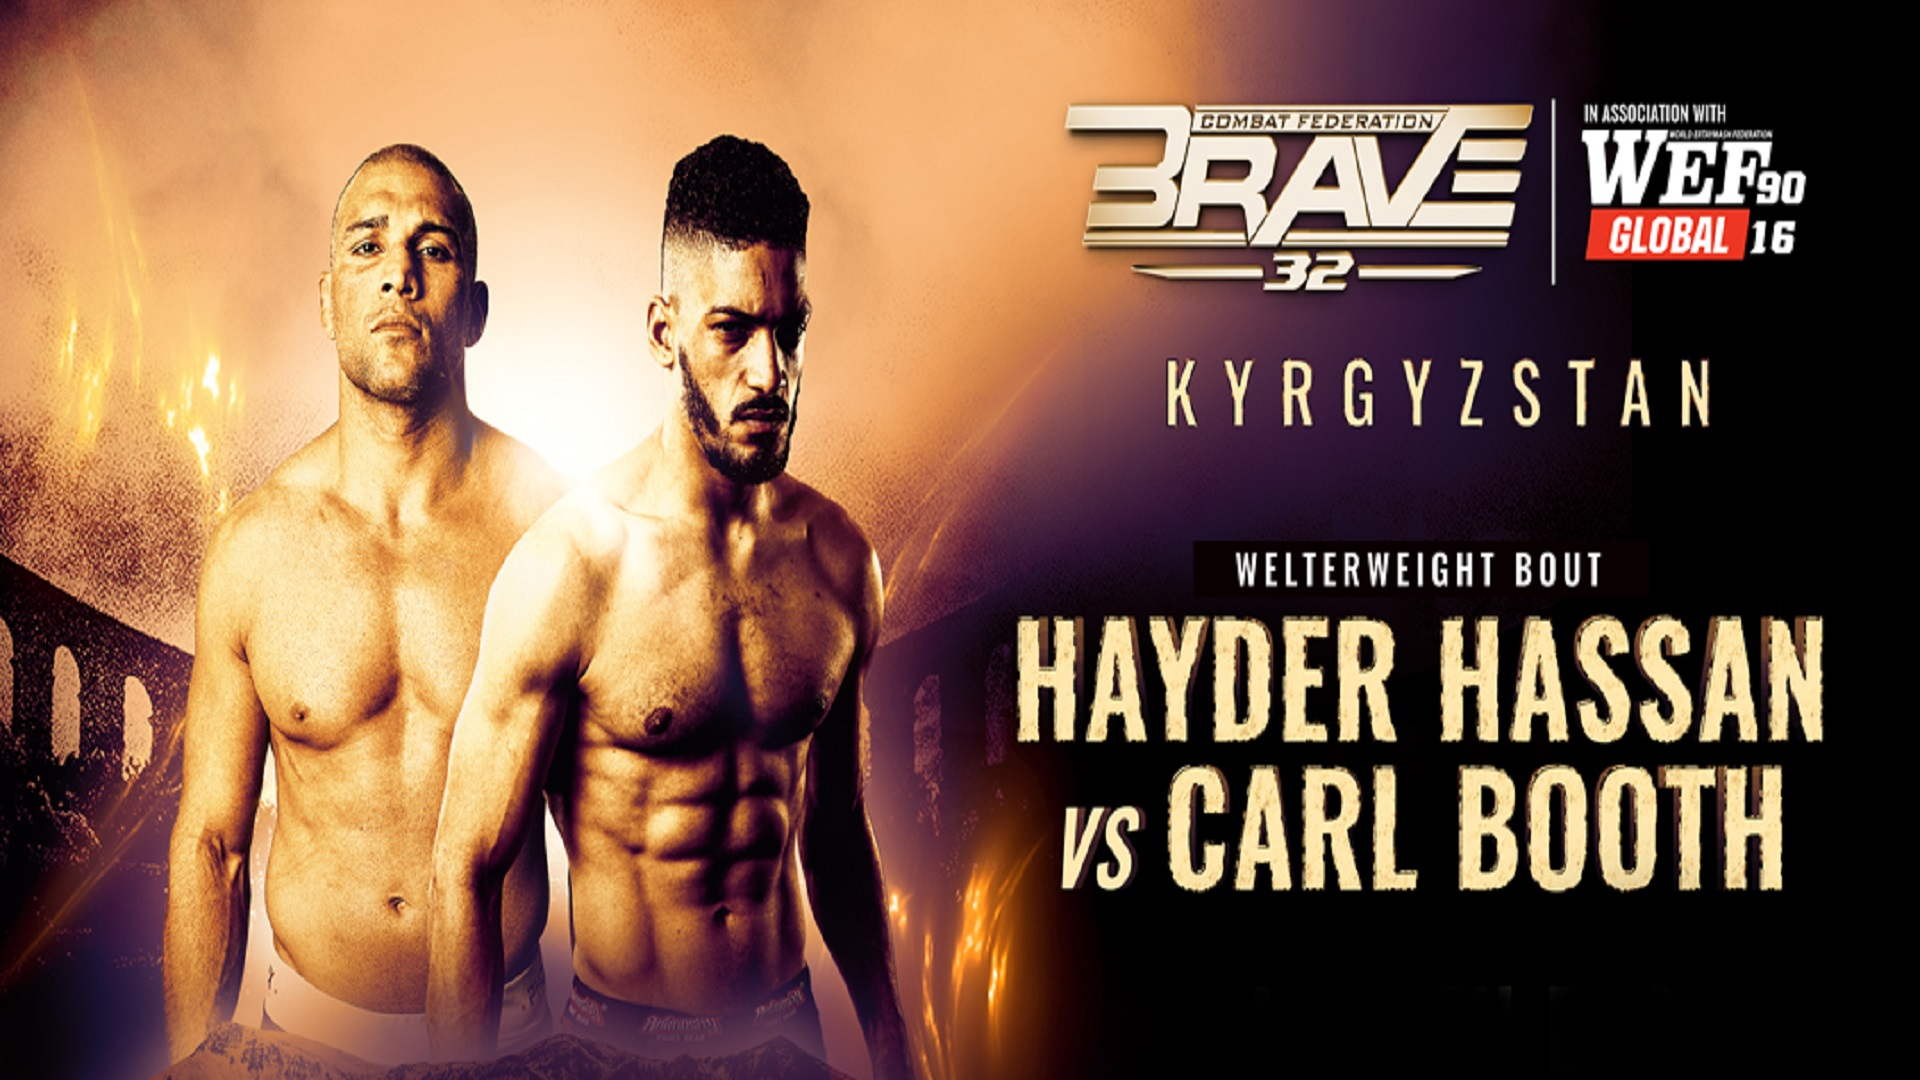 Brave-CF-32-Complete-Fight-Card